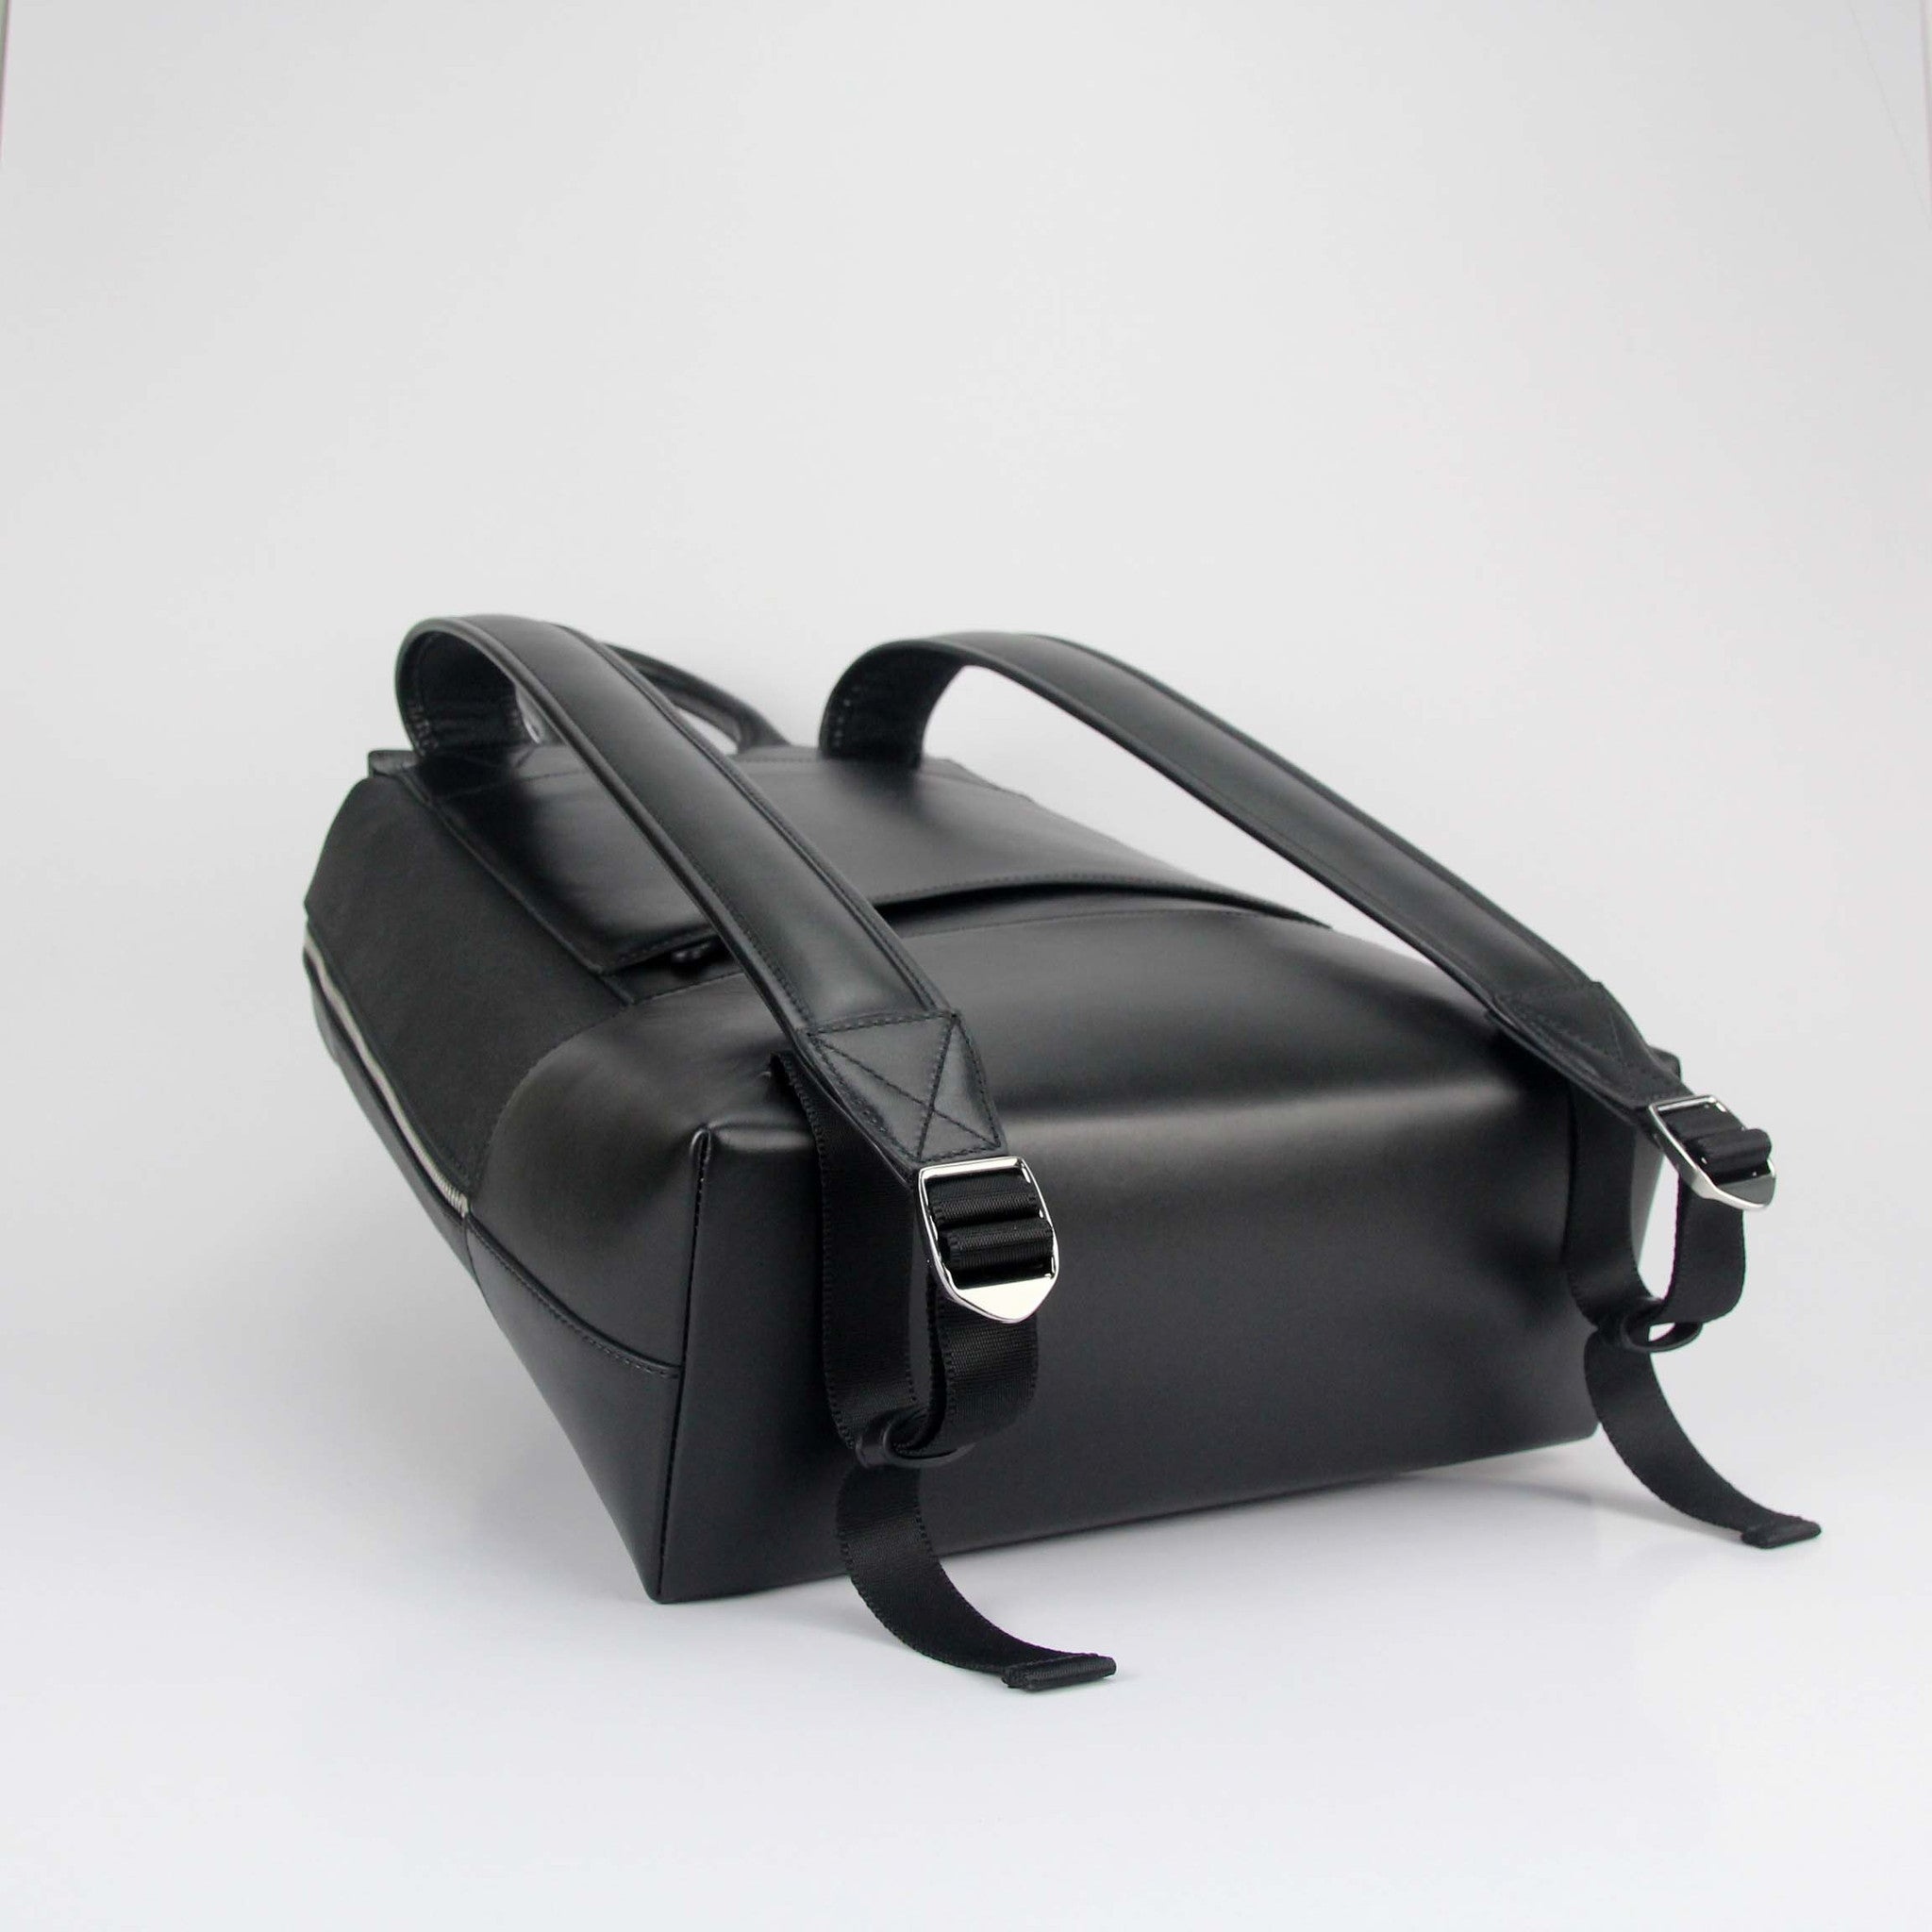 THE NATE LEATHER BACKPACK